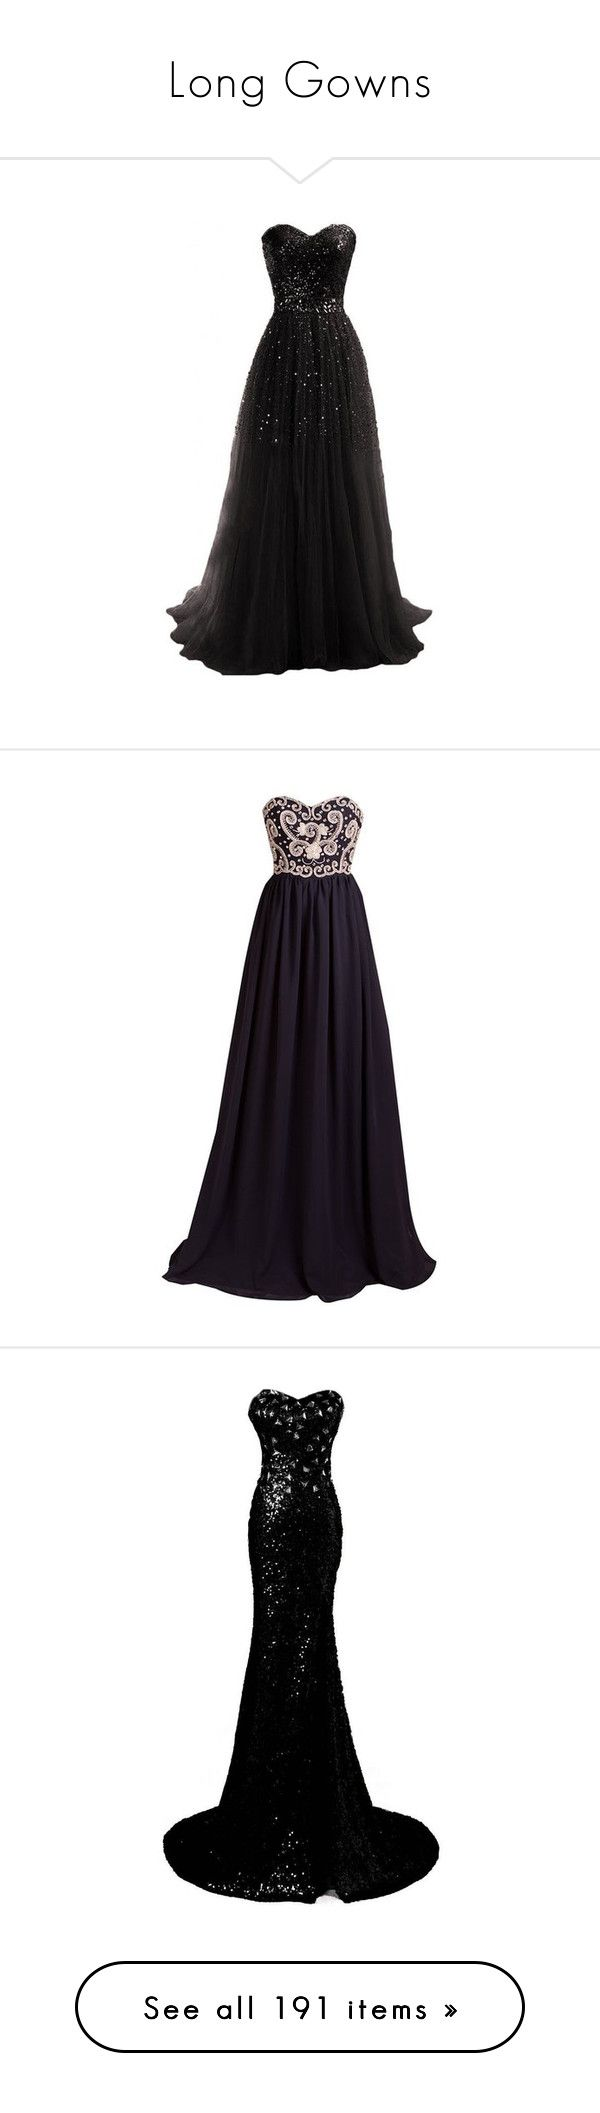 """Long Gowns"" by smilxngstars on Polyvore featuring dresses, gowns, vestidos, long dresses, robe, black, strapless gown, print maxi dress, tube maxi dresses und sequin gown"